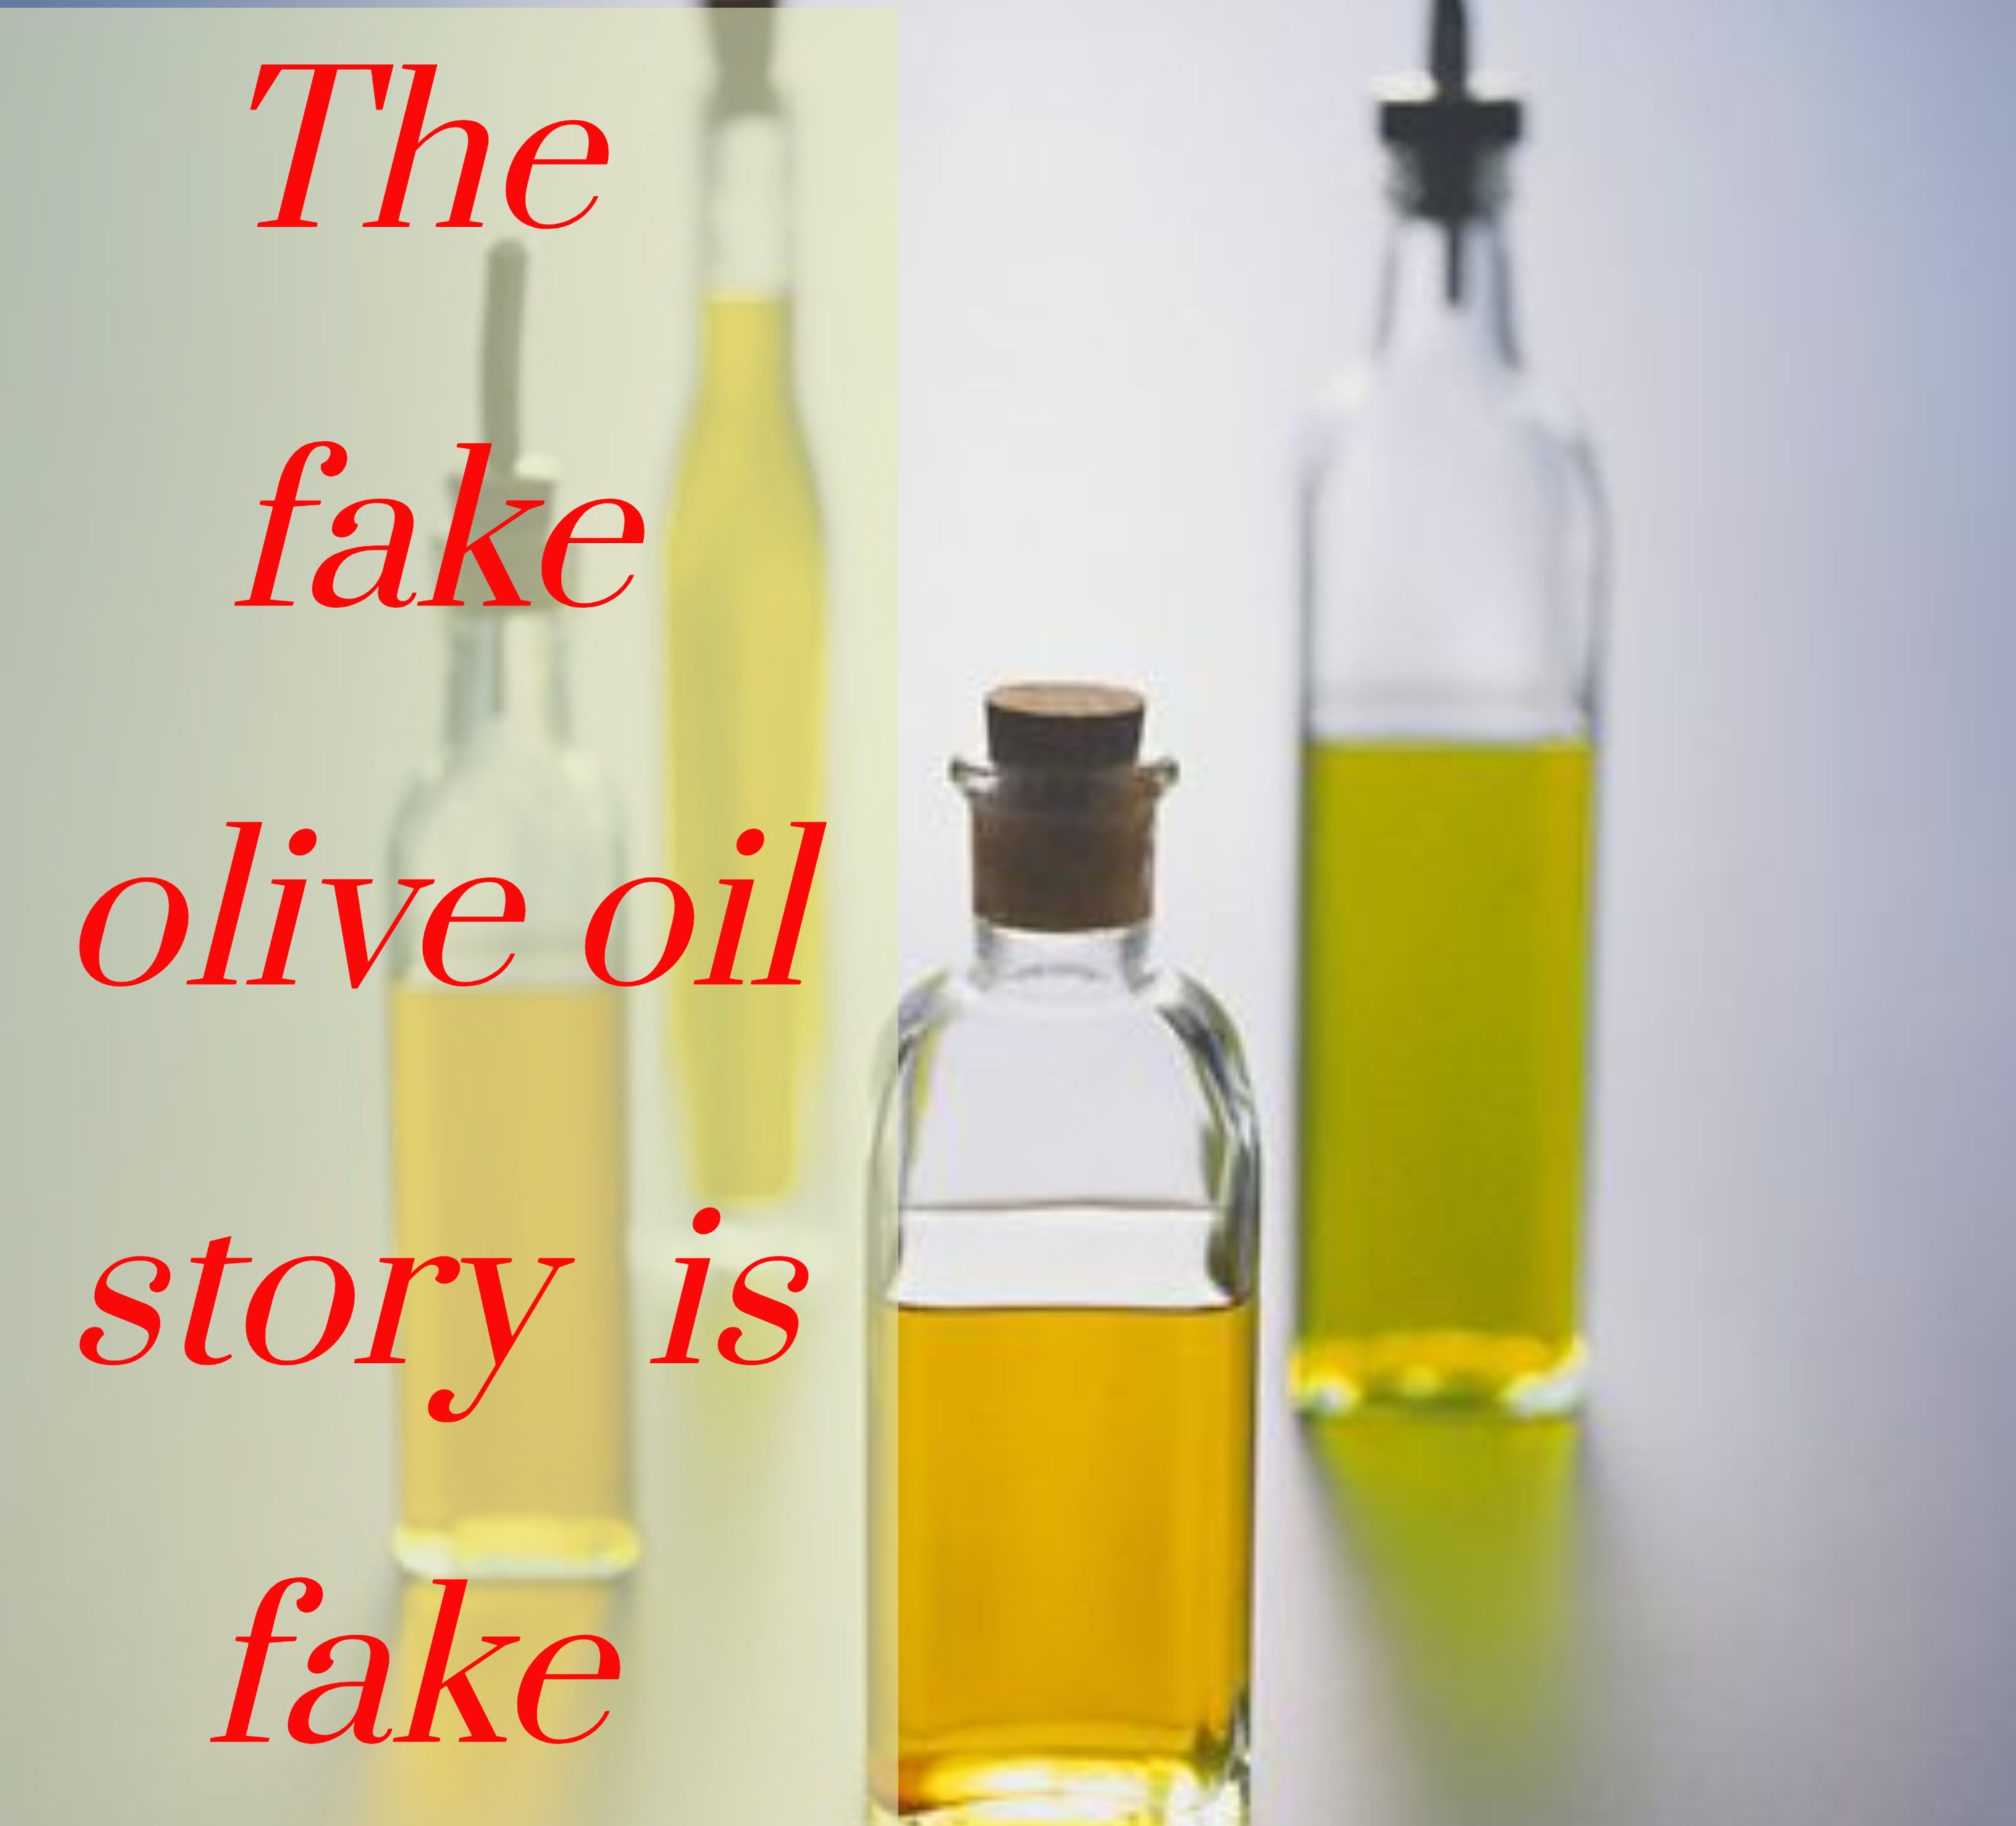 14 fake olive oil companies revealed!!! This headline you